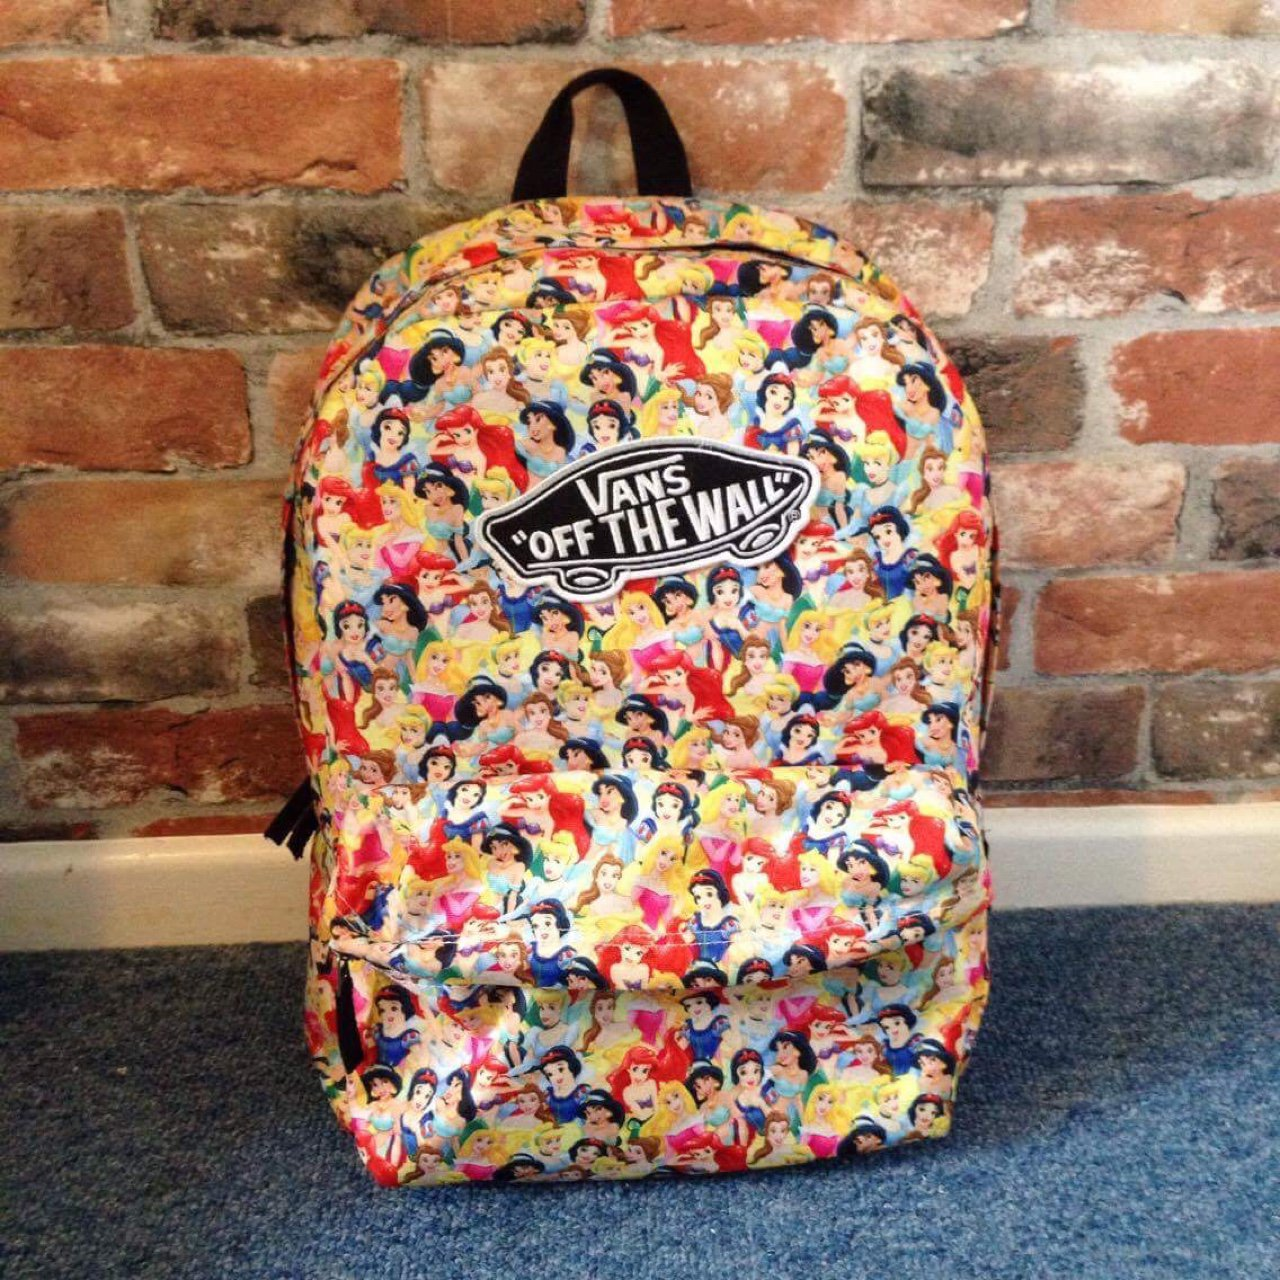 d7dd66894dab Vans disney princess backpack used perfect condition depop jpg 1280x1280 Vans  princess backpack